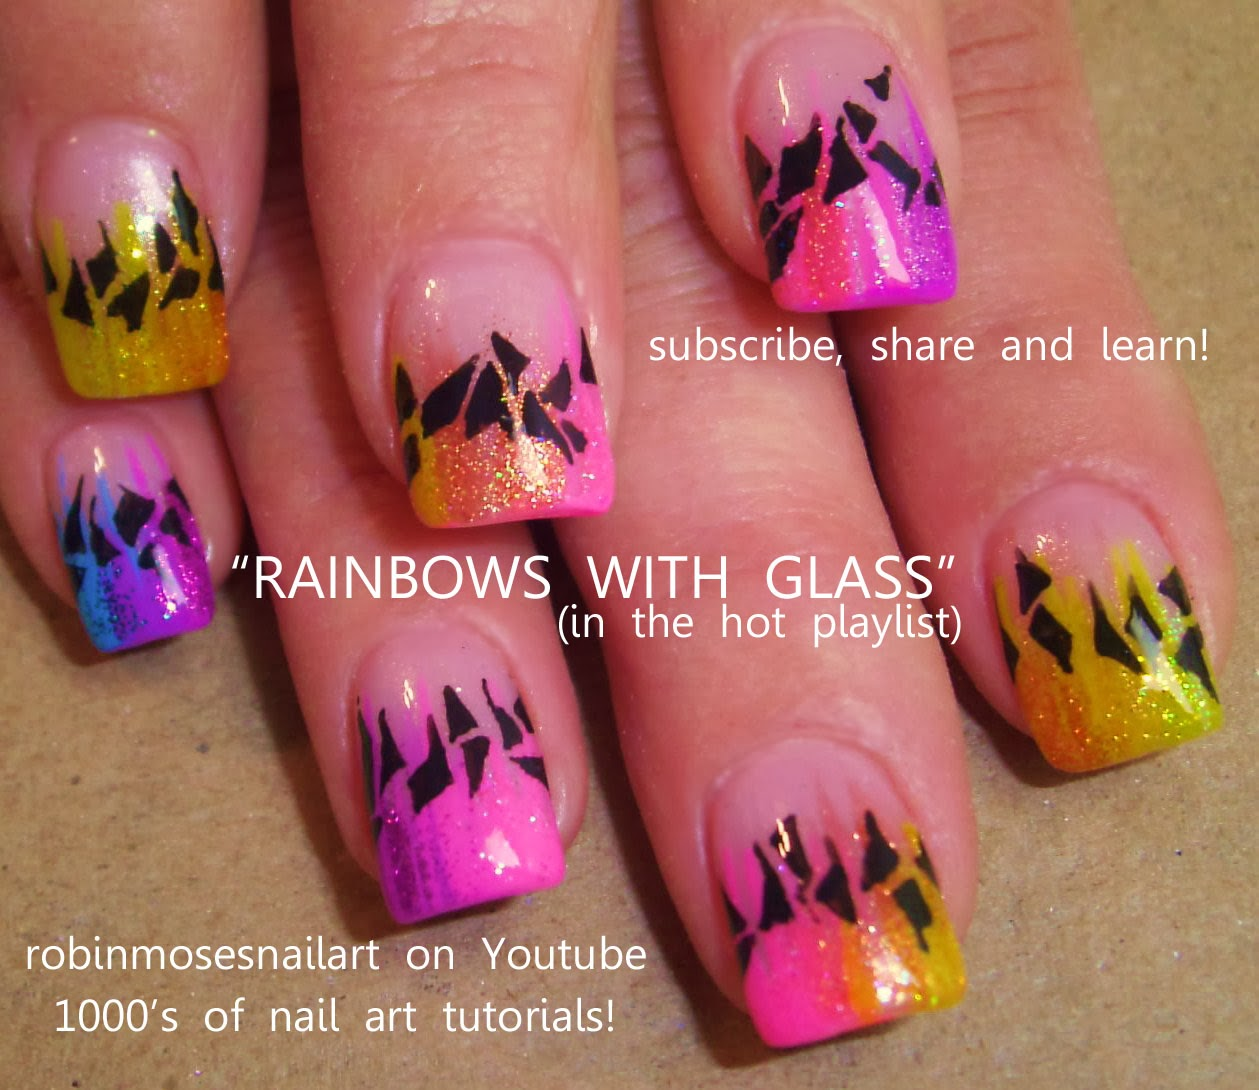 Robin moses nail art stained glass nails valentines day nail stained glass nail art prinsesfo Choice Image